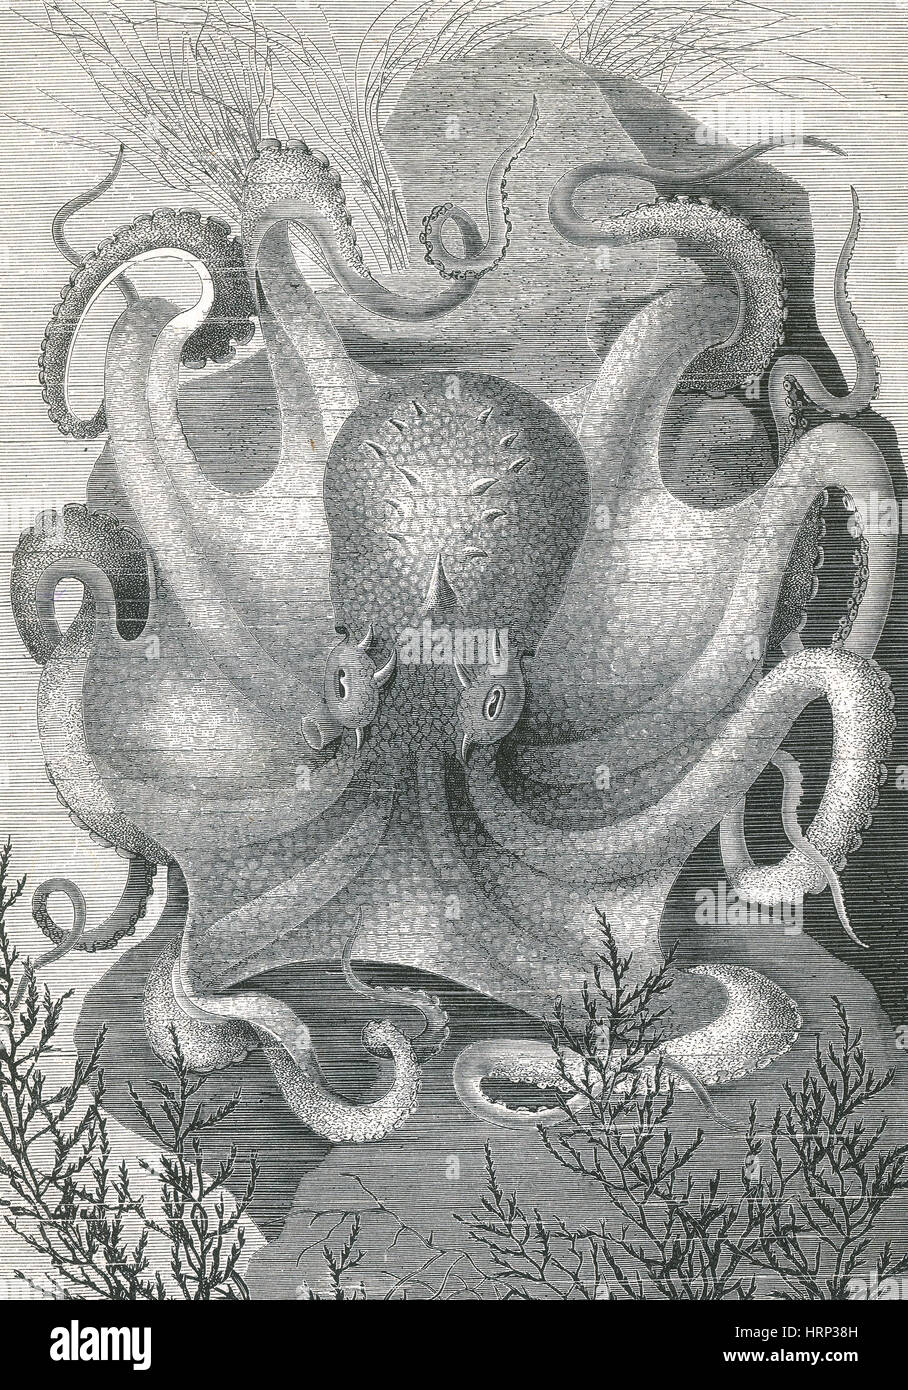 Octopus, 1878 - Stock Image